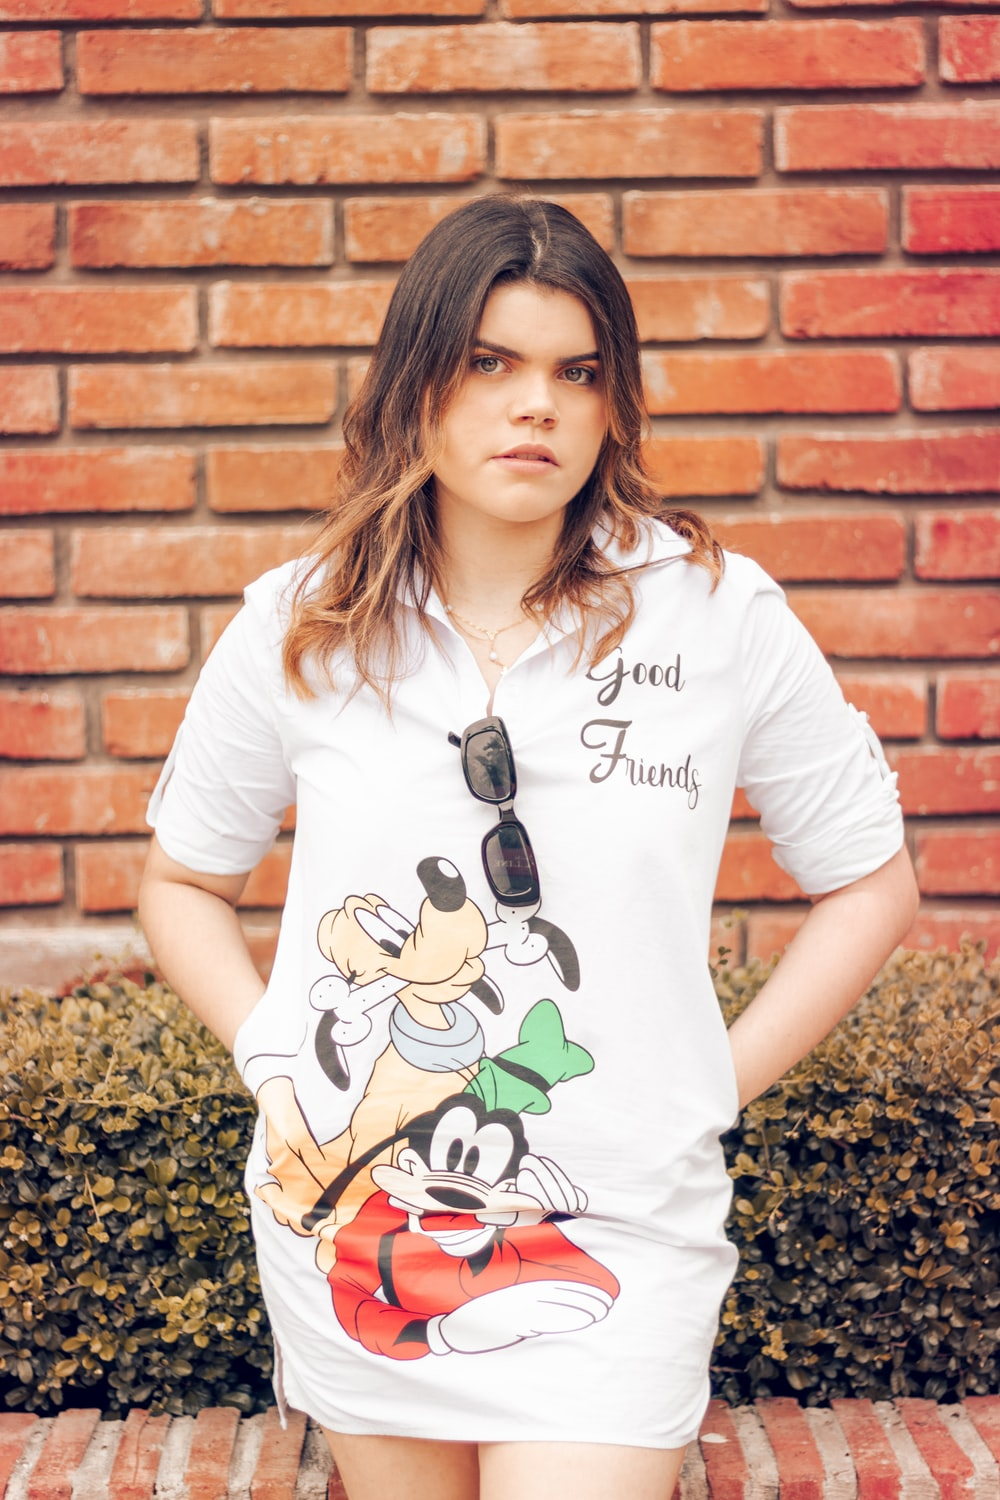 woman in white crew neck t-shirt standing beside brown brick wall